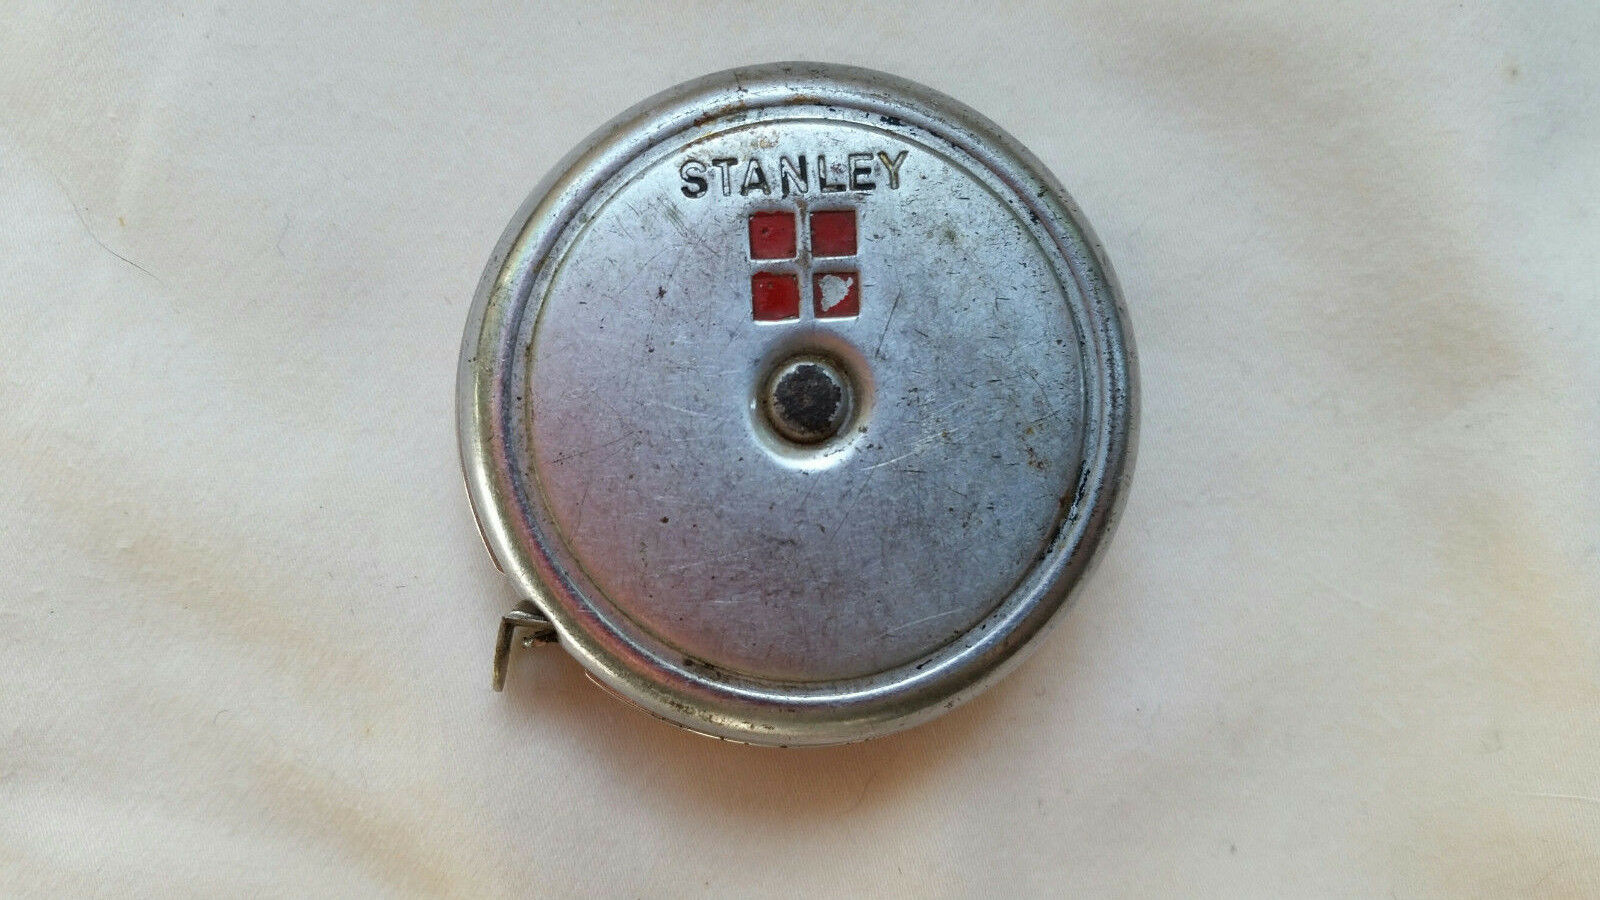 Stanley  Tape Measure No.1166 Satin Chromium Finish  new branded